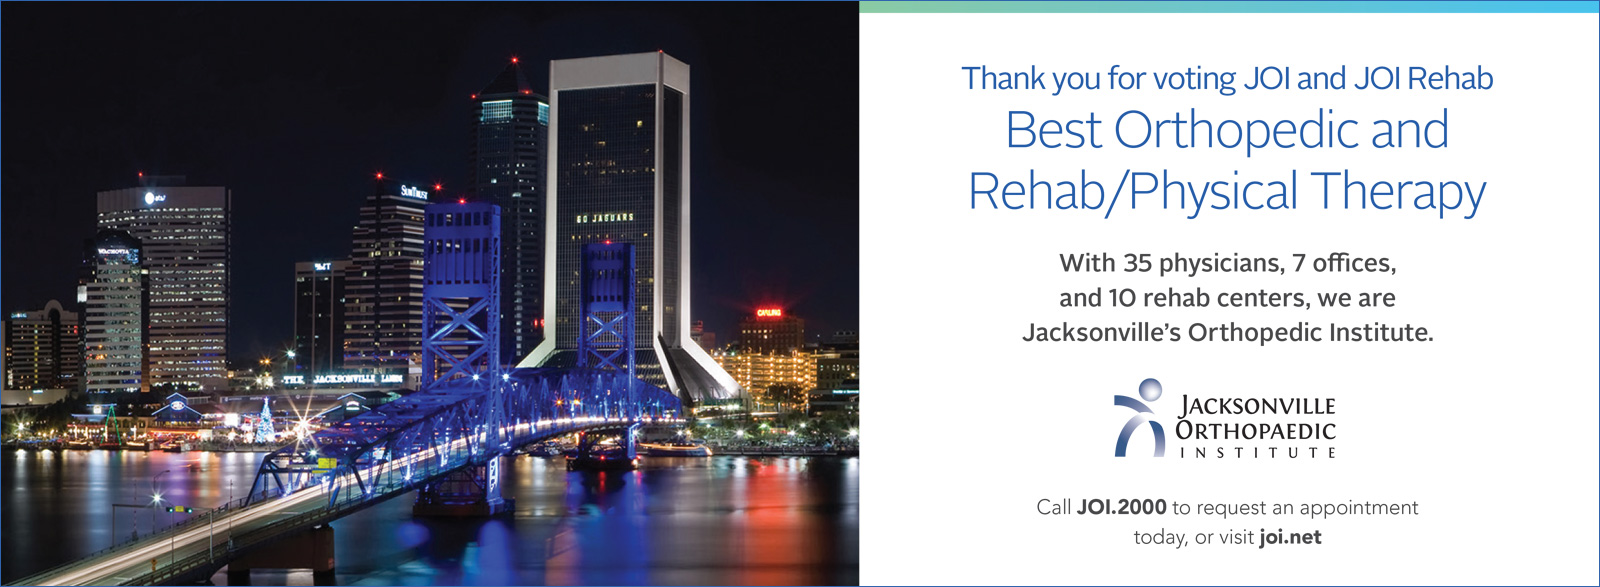 Best Orthopedic and Rehab/Physical Therapy